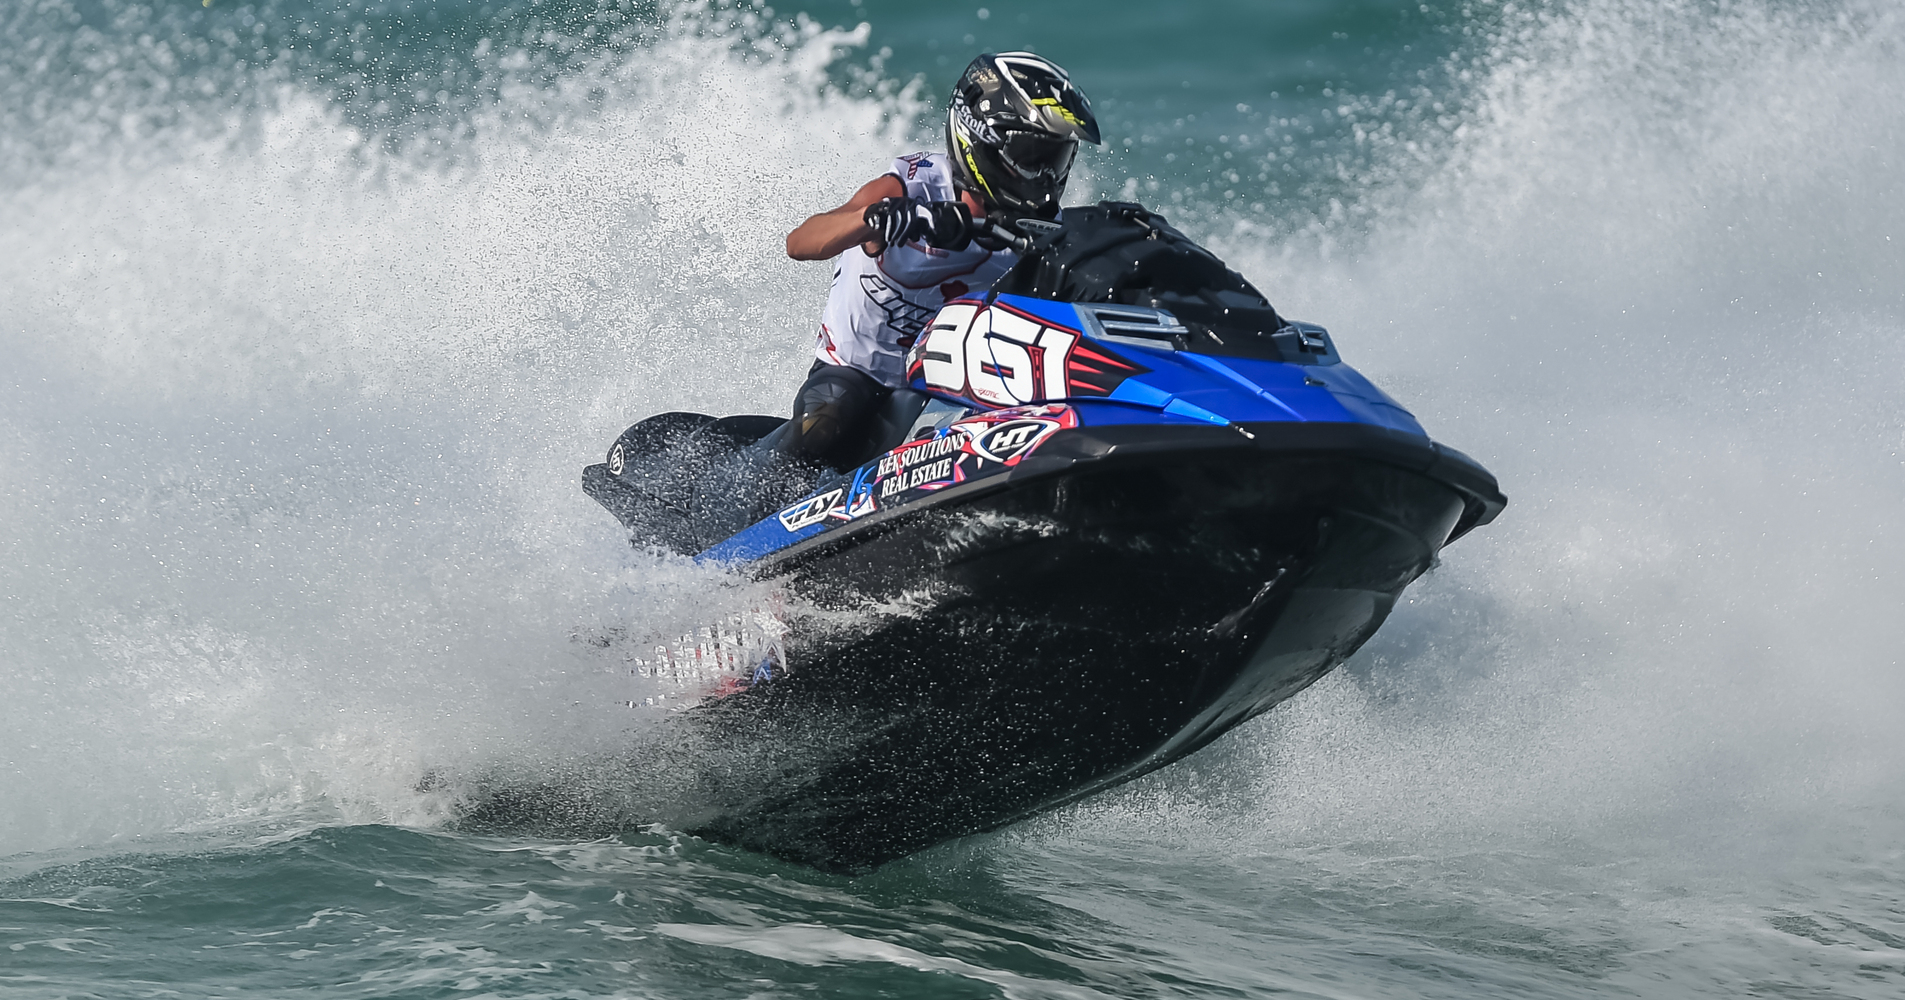 Lagopoulos is excited for the challenge of St Pete Beach this weekend